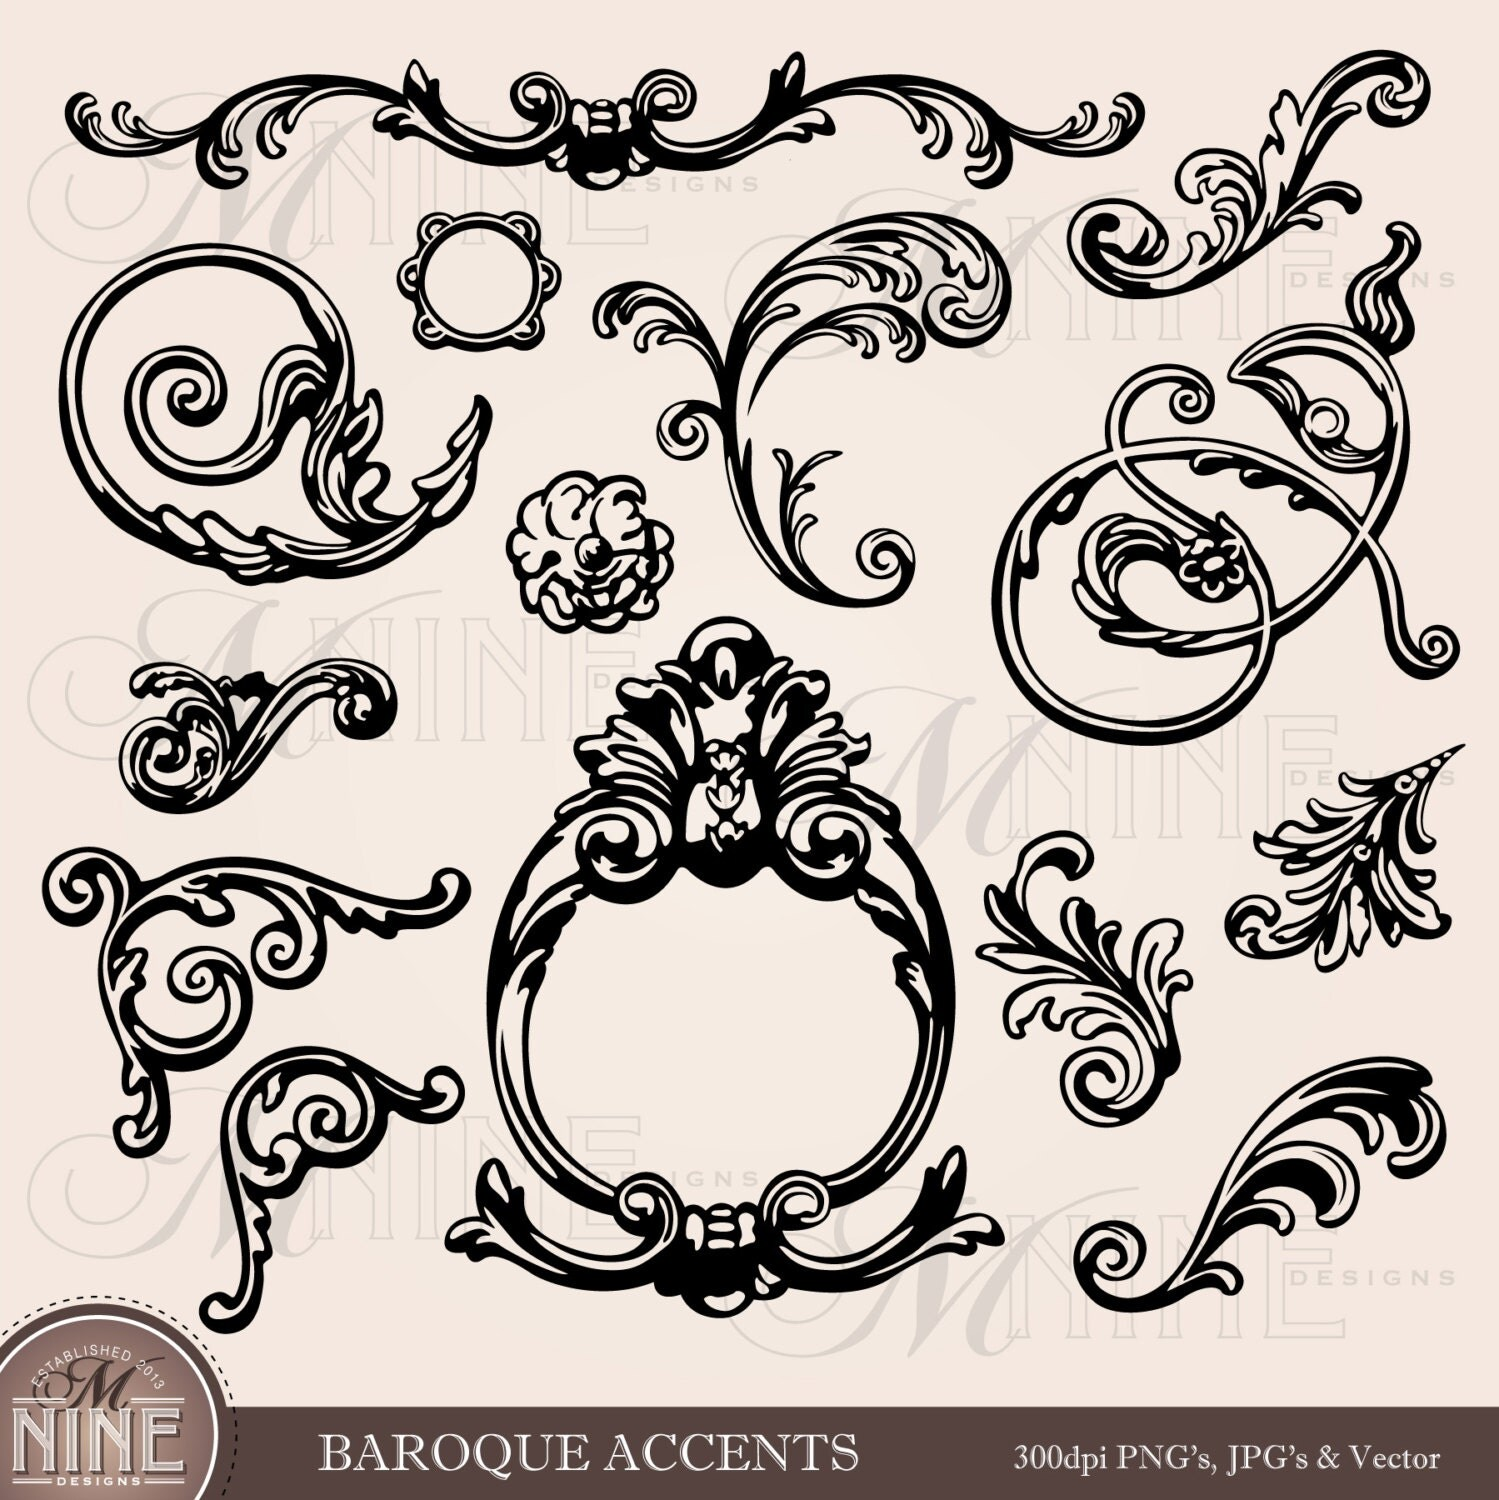 Baroque accents clipart illustrations instant by mninedesigns for Baroque architecture elements